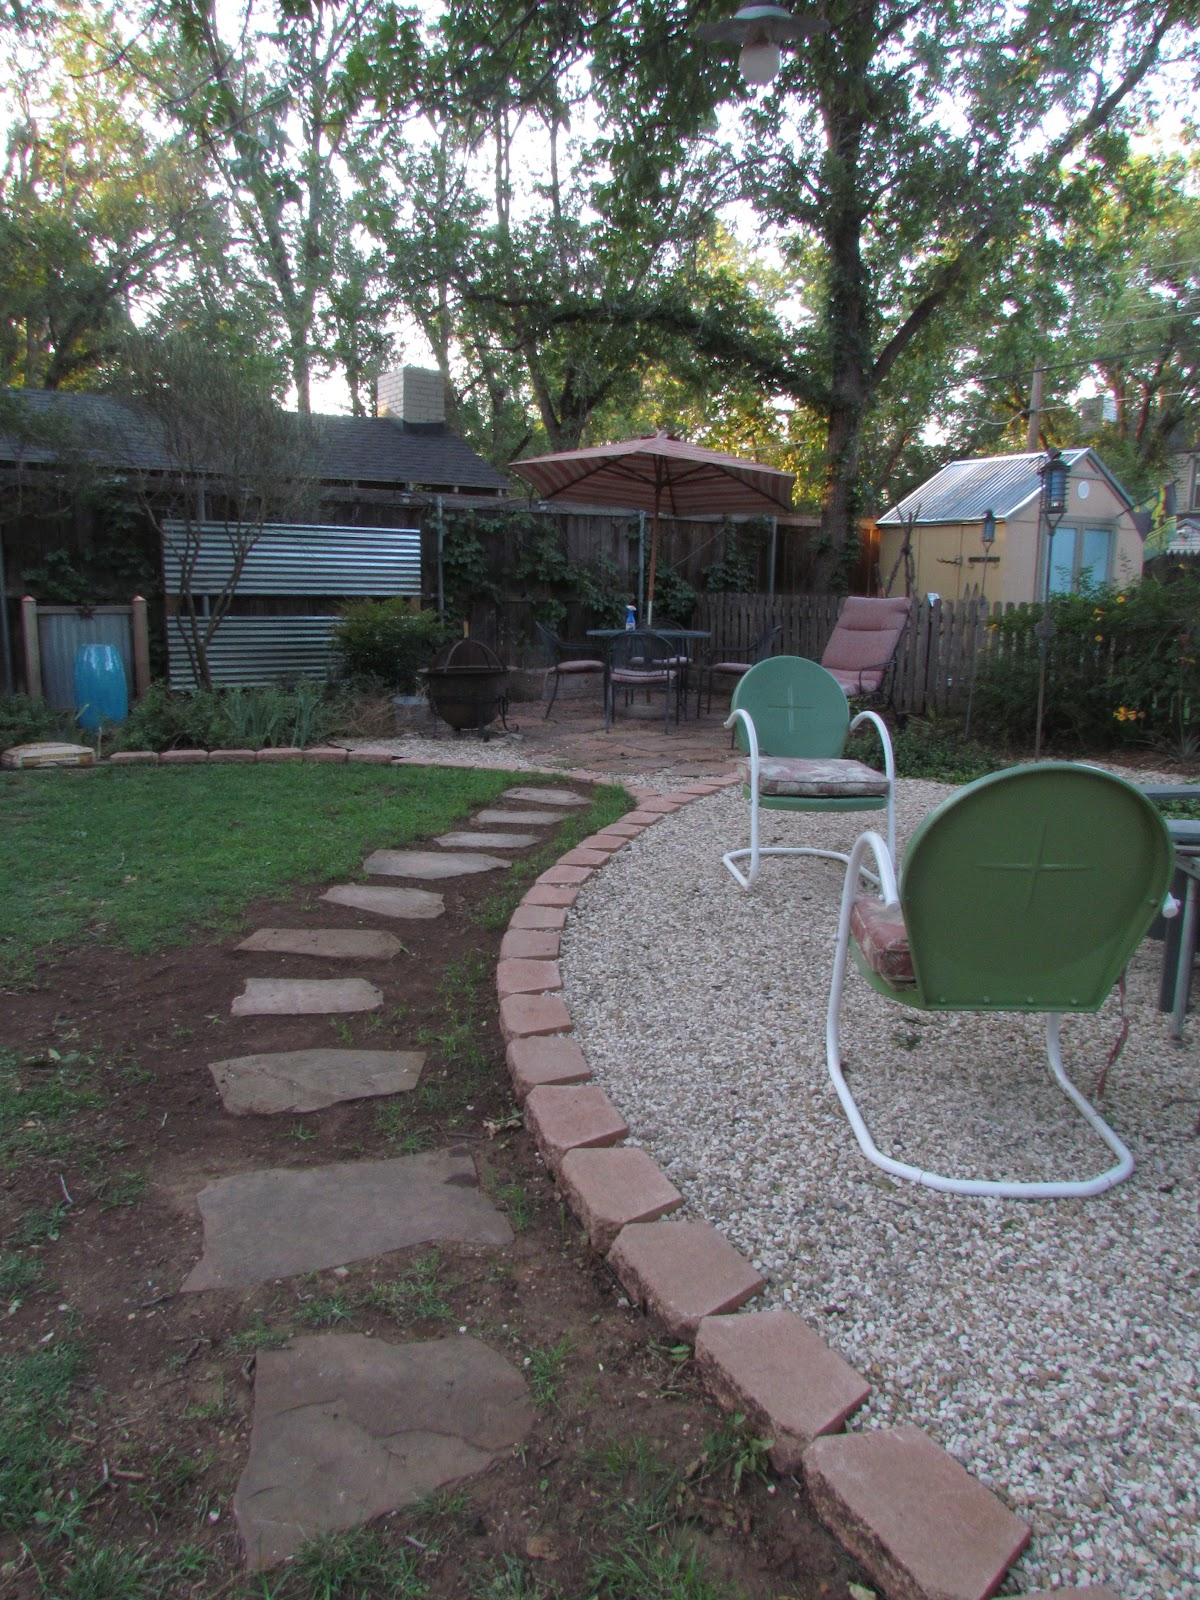 Pea Gravel Backyard For Dogs : The Bicycle Garden Sharing the garden with dogs